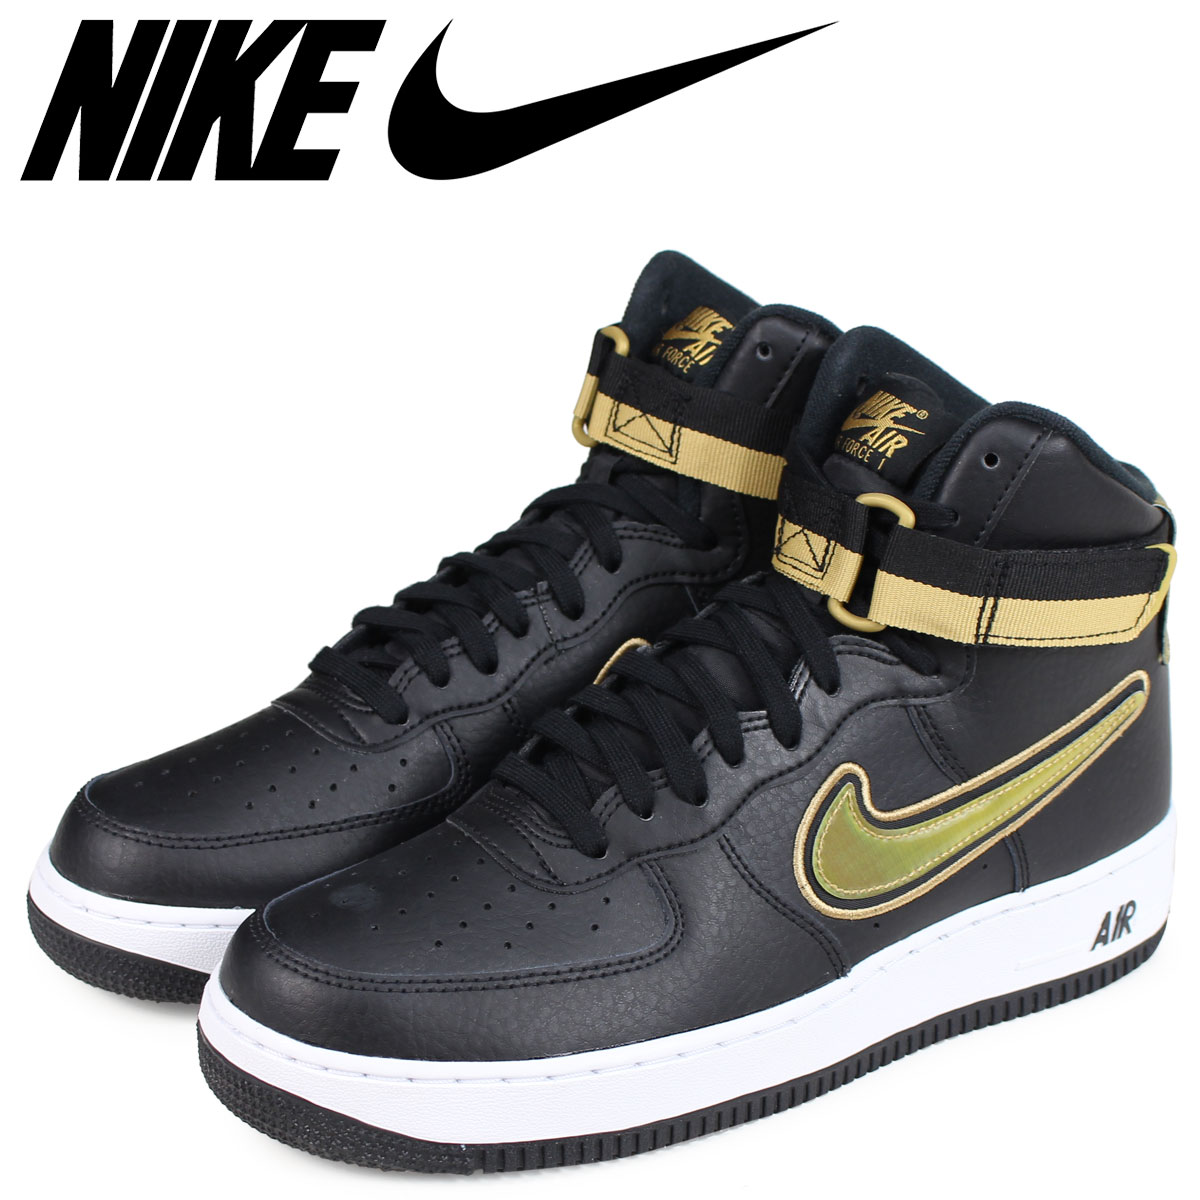 quality design 2dc46 63c23  brand NIKE getting high popularity from sneakers freak